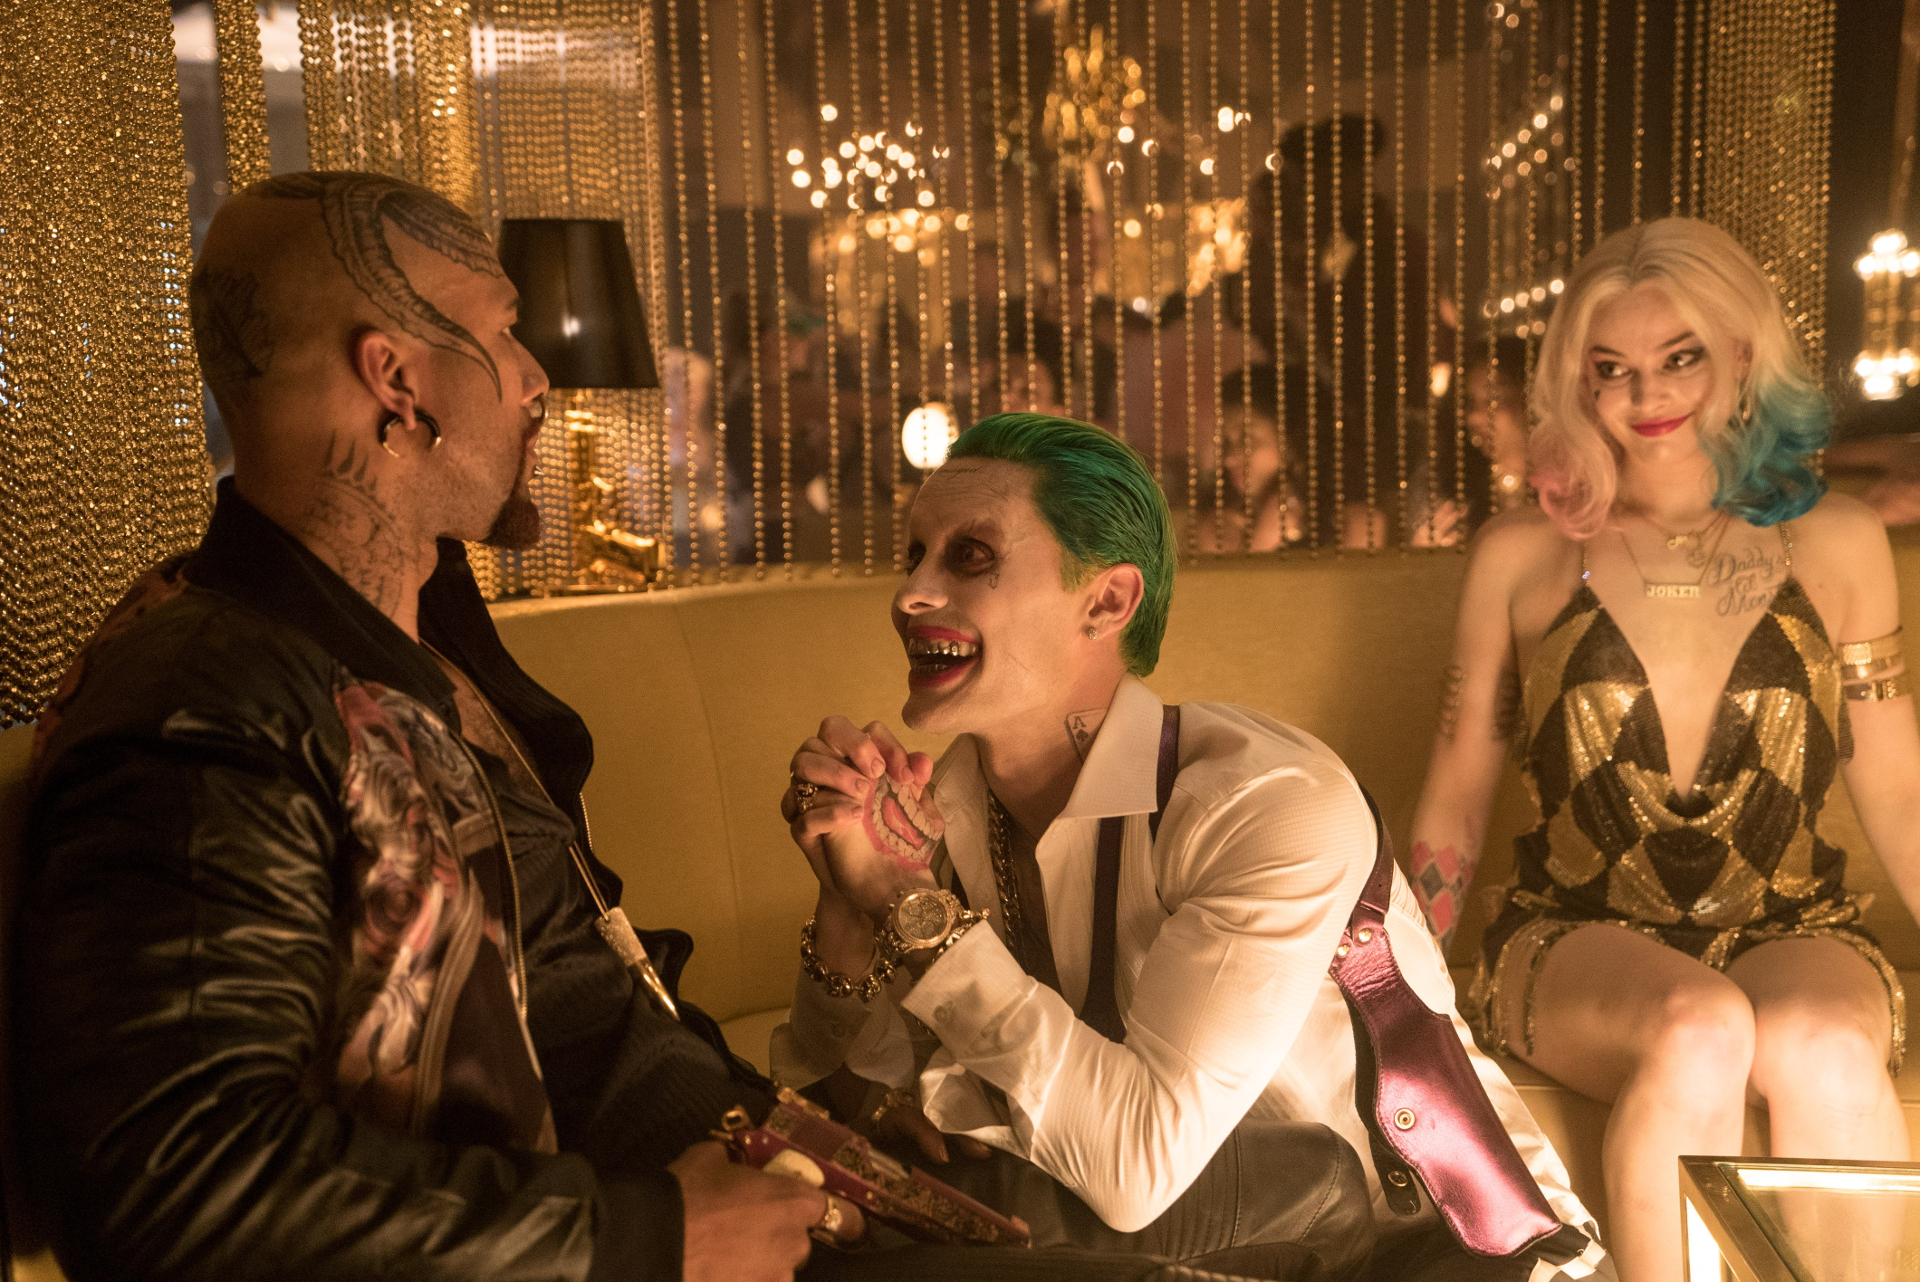 Jared Leto Joker Margot Robbie Suicide Squad Will Smith Wallpapers